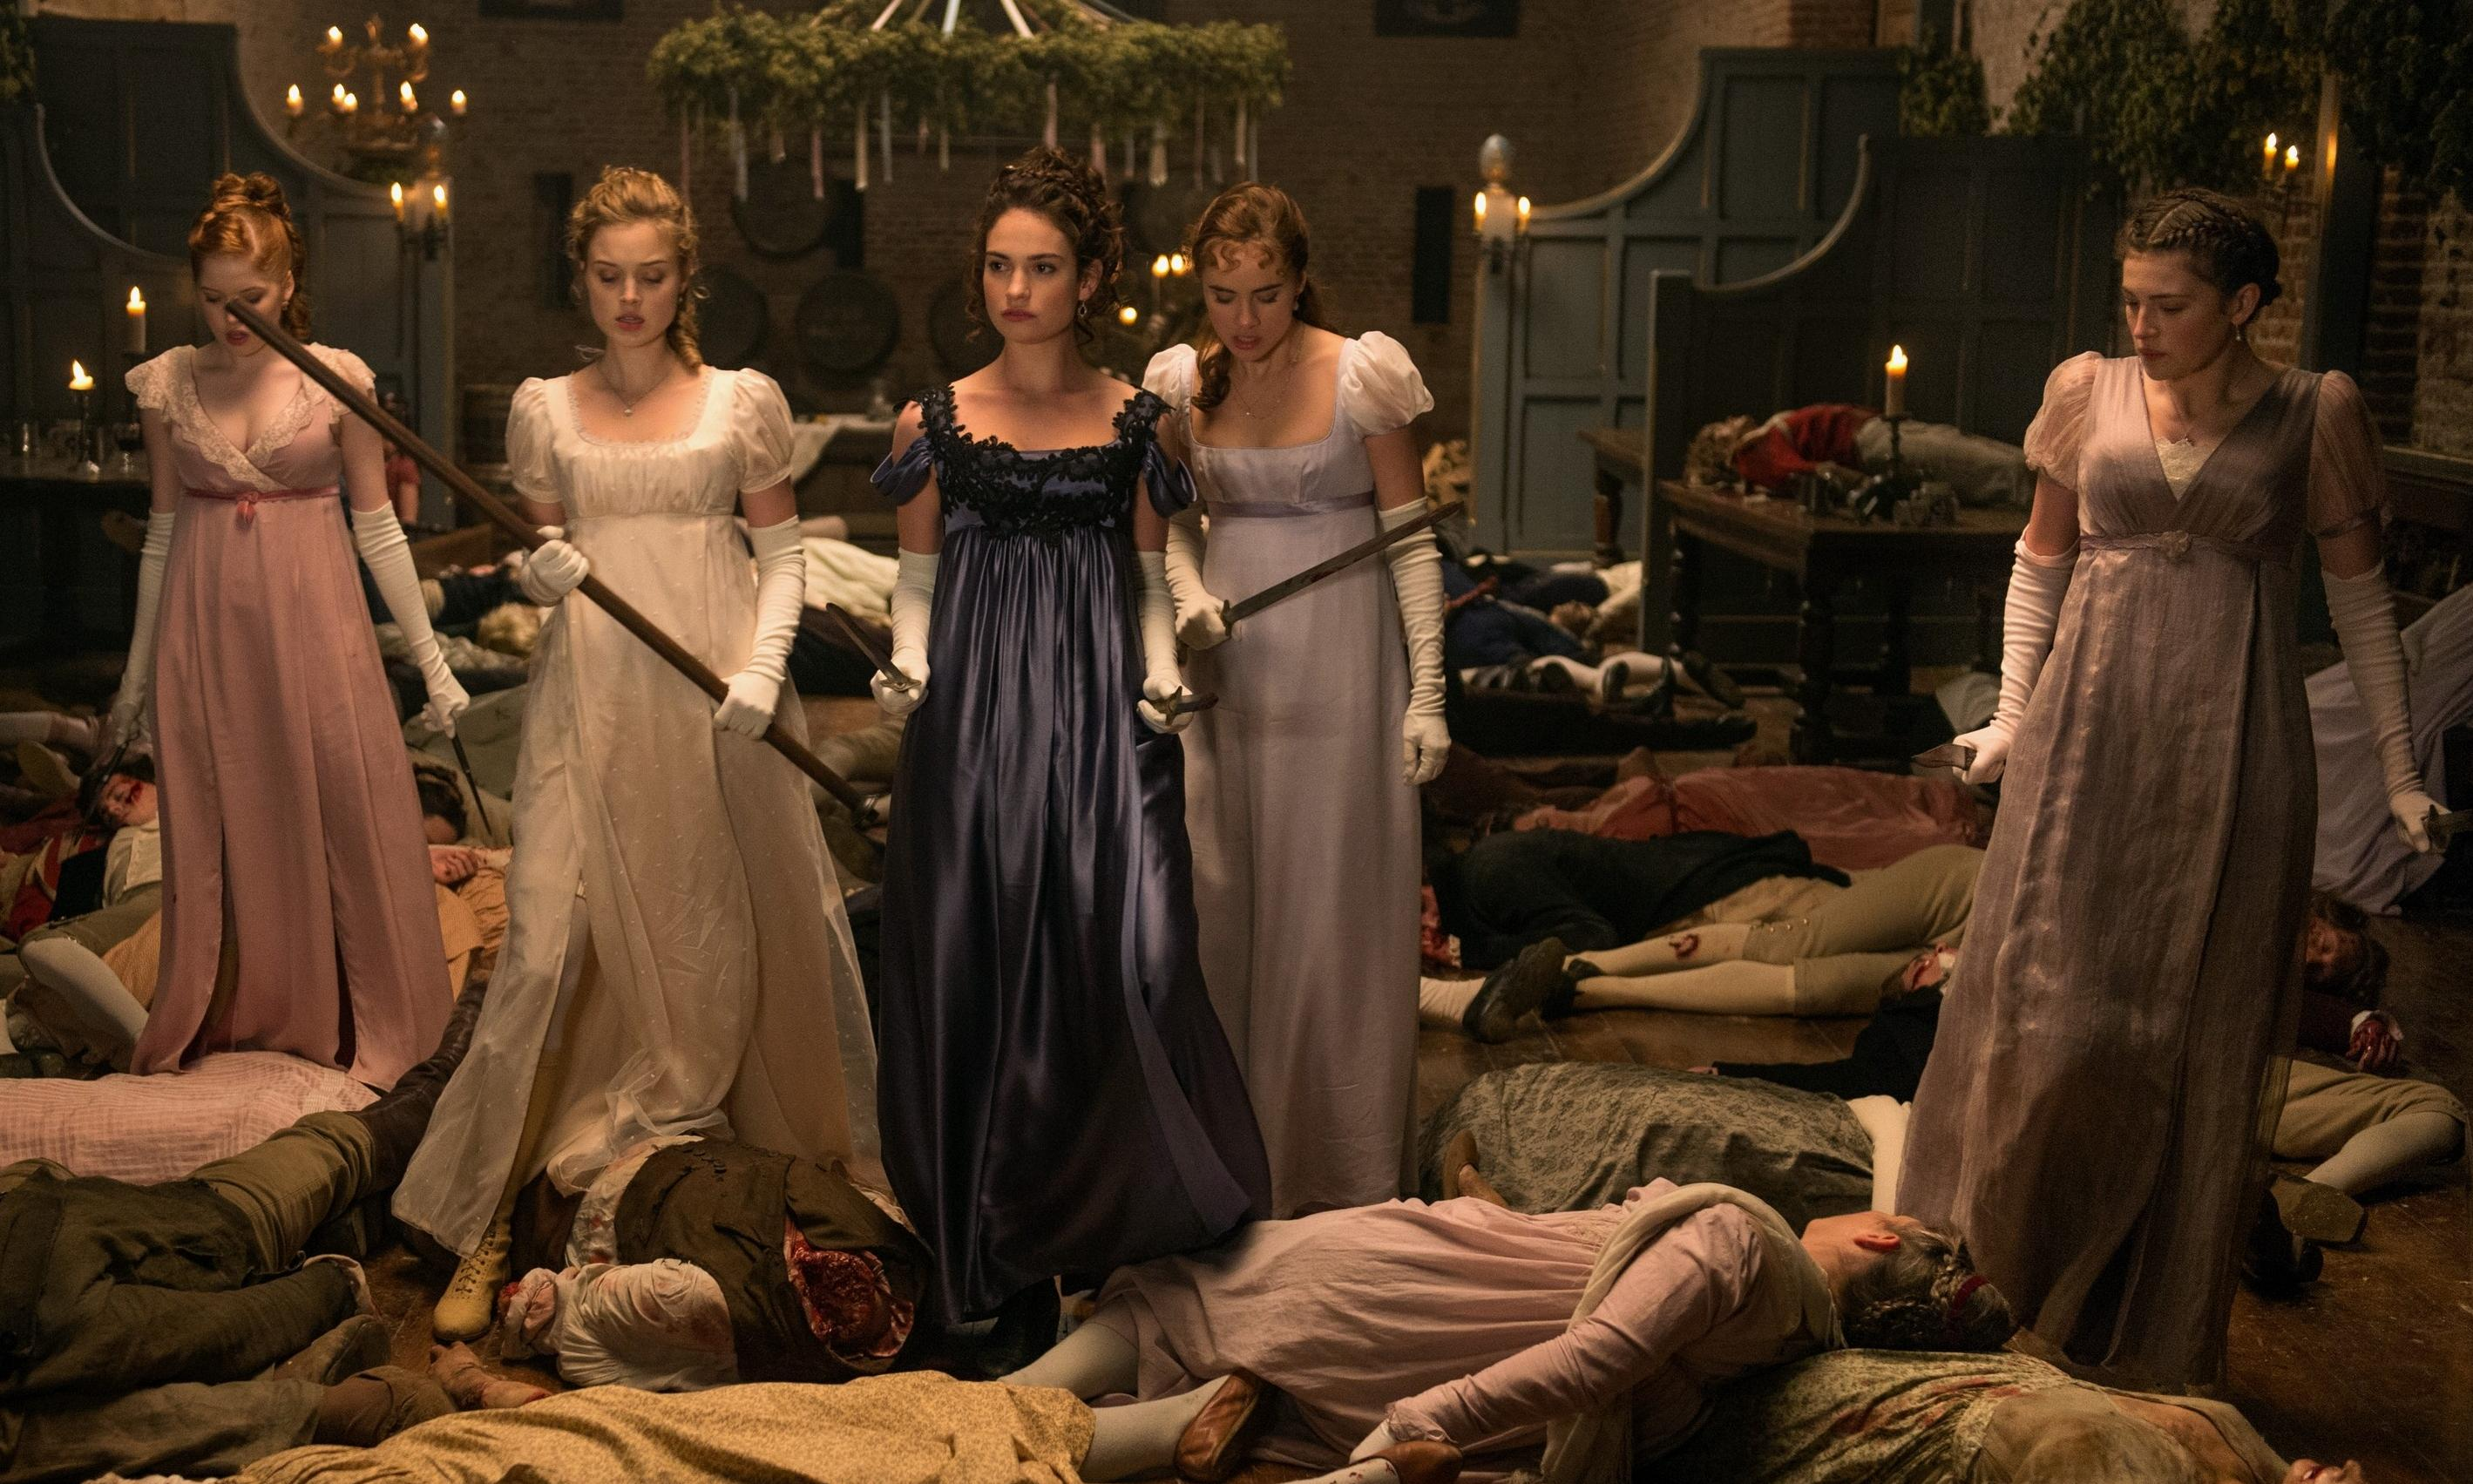 FILM REVIEW: Pride and Prejudice and Zombies | clairestbearestreviews